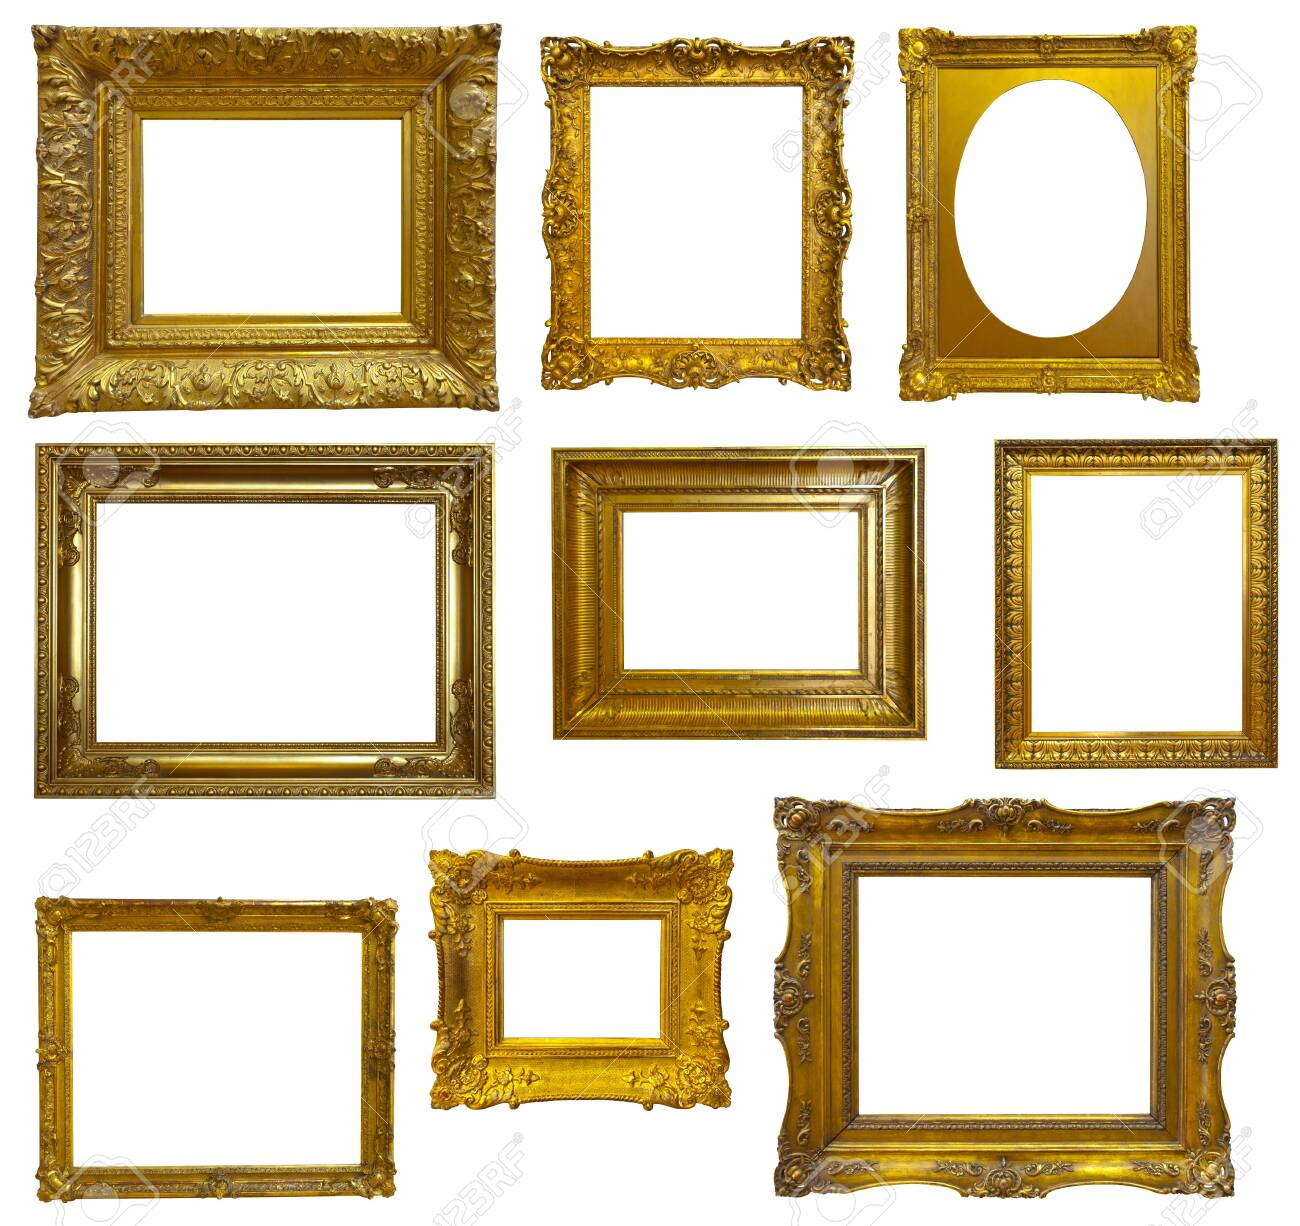 Set of luxury gilded frame. Isolated over white background, may be used for photo or picture - 132101648